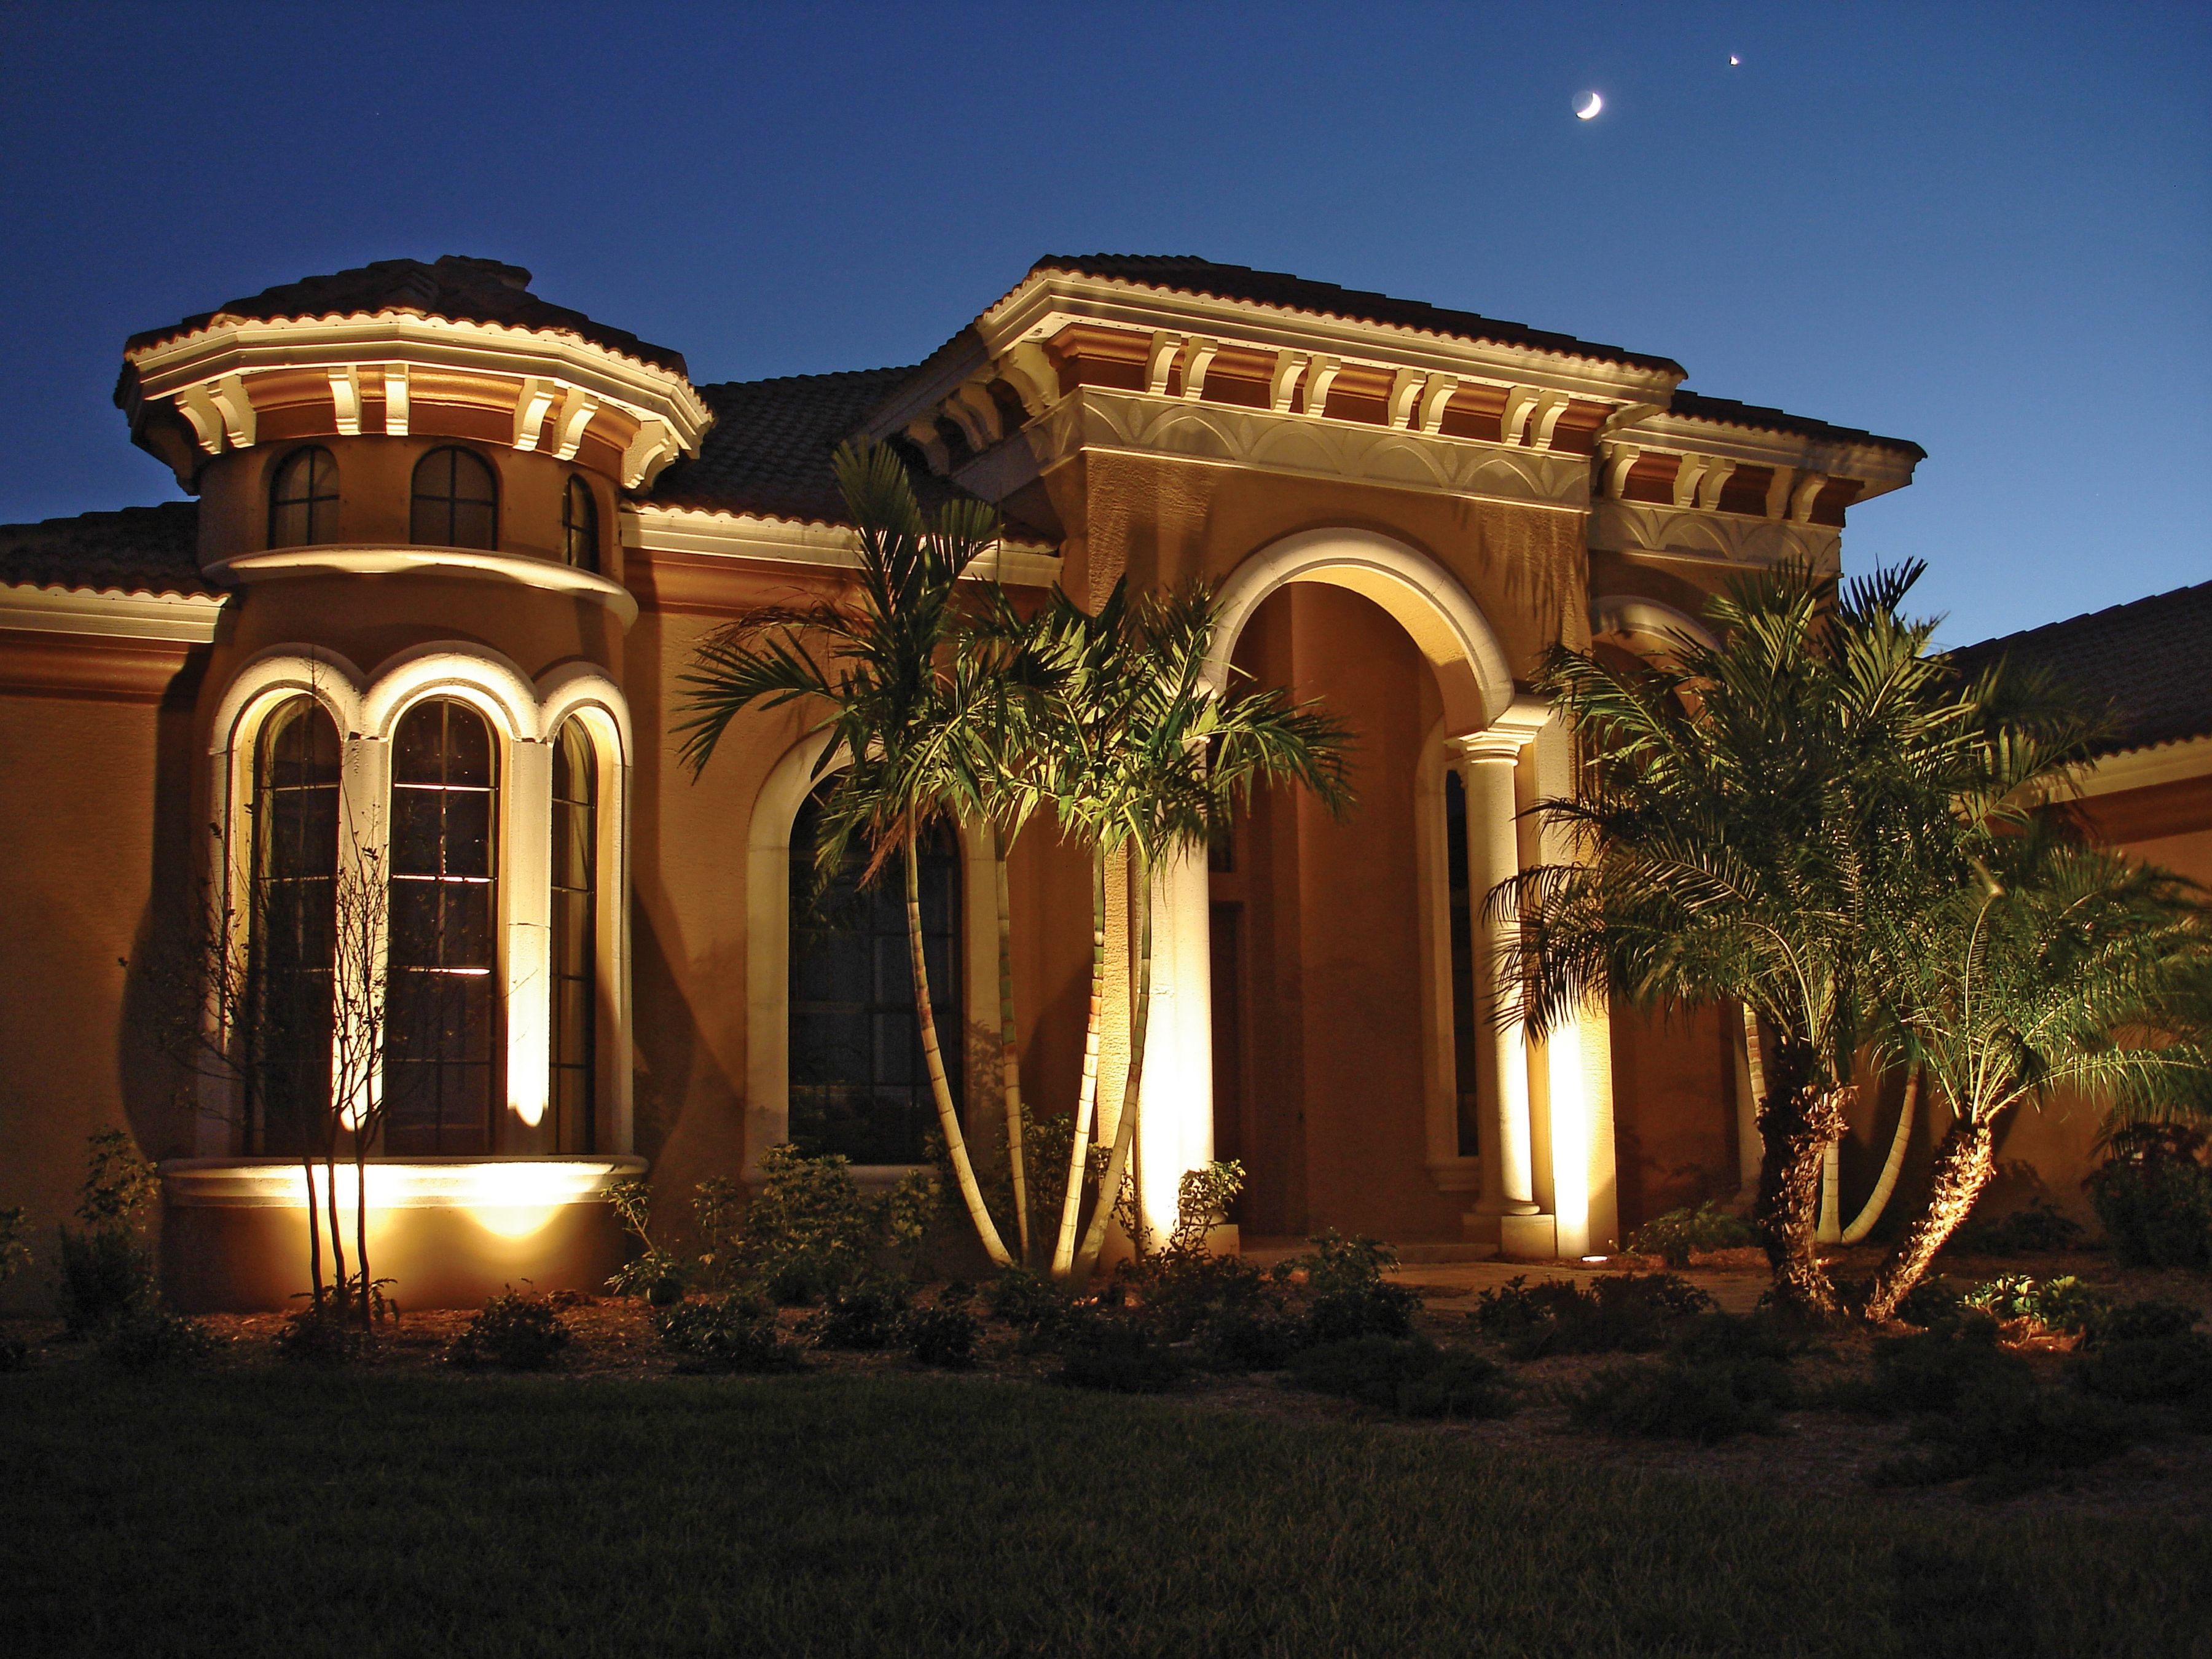 Outdoor Lighting Helps Your House Look Its Best At Night Outdoor Lighting Curb Appeal Landscape Lighting